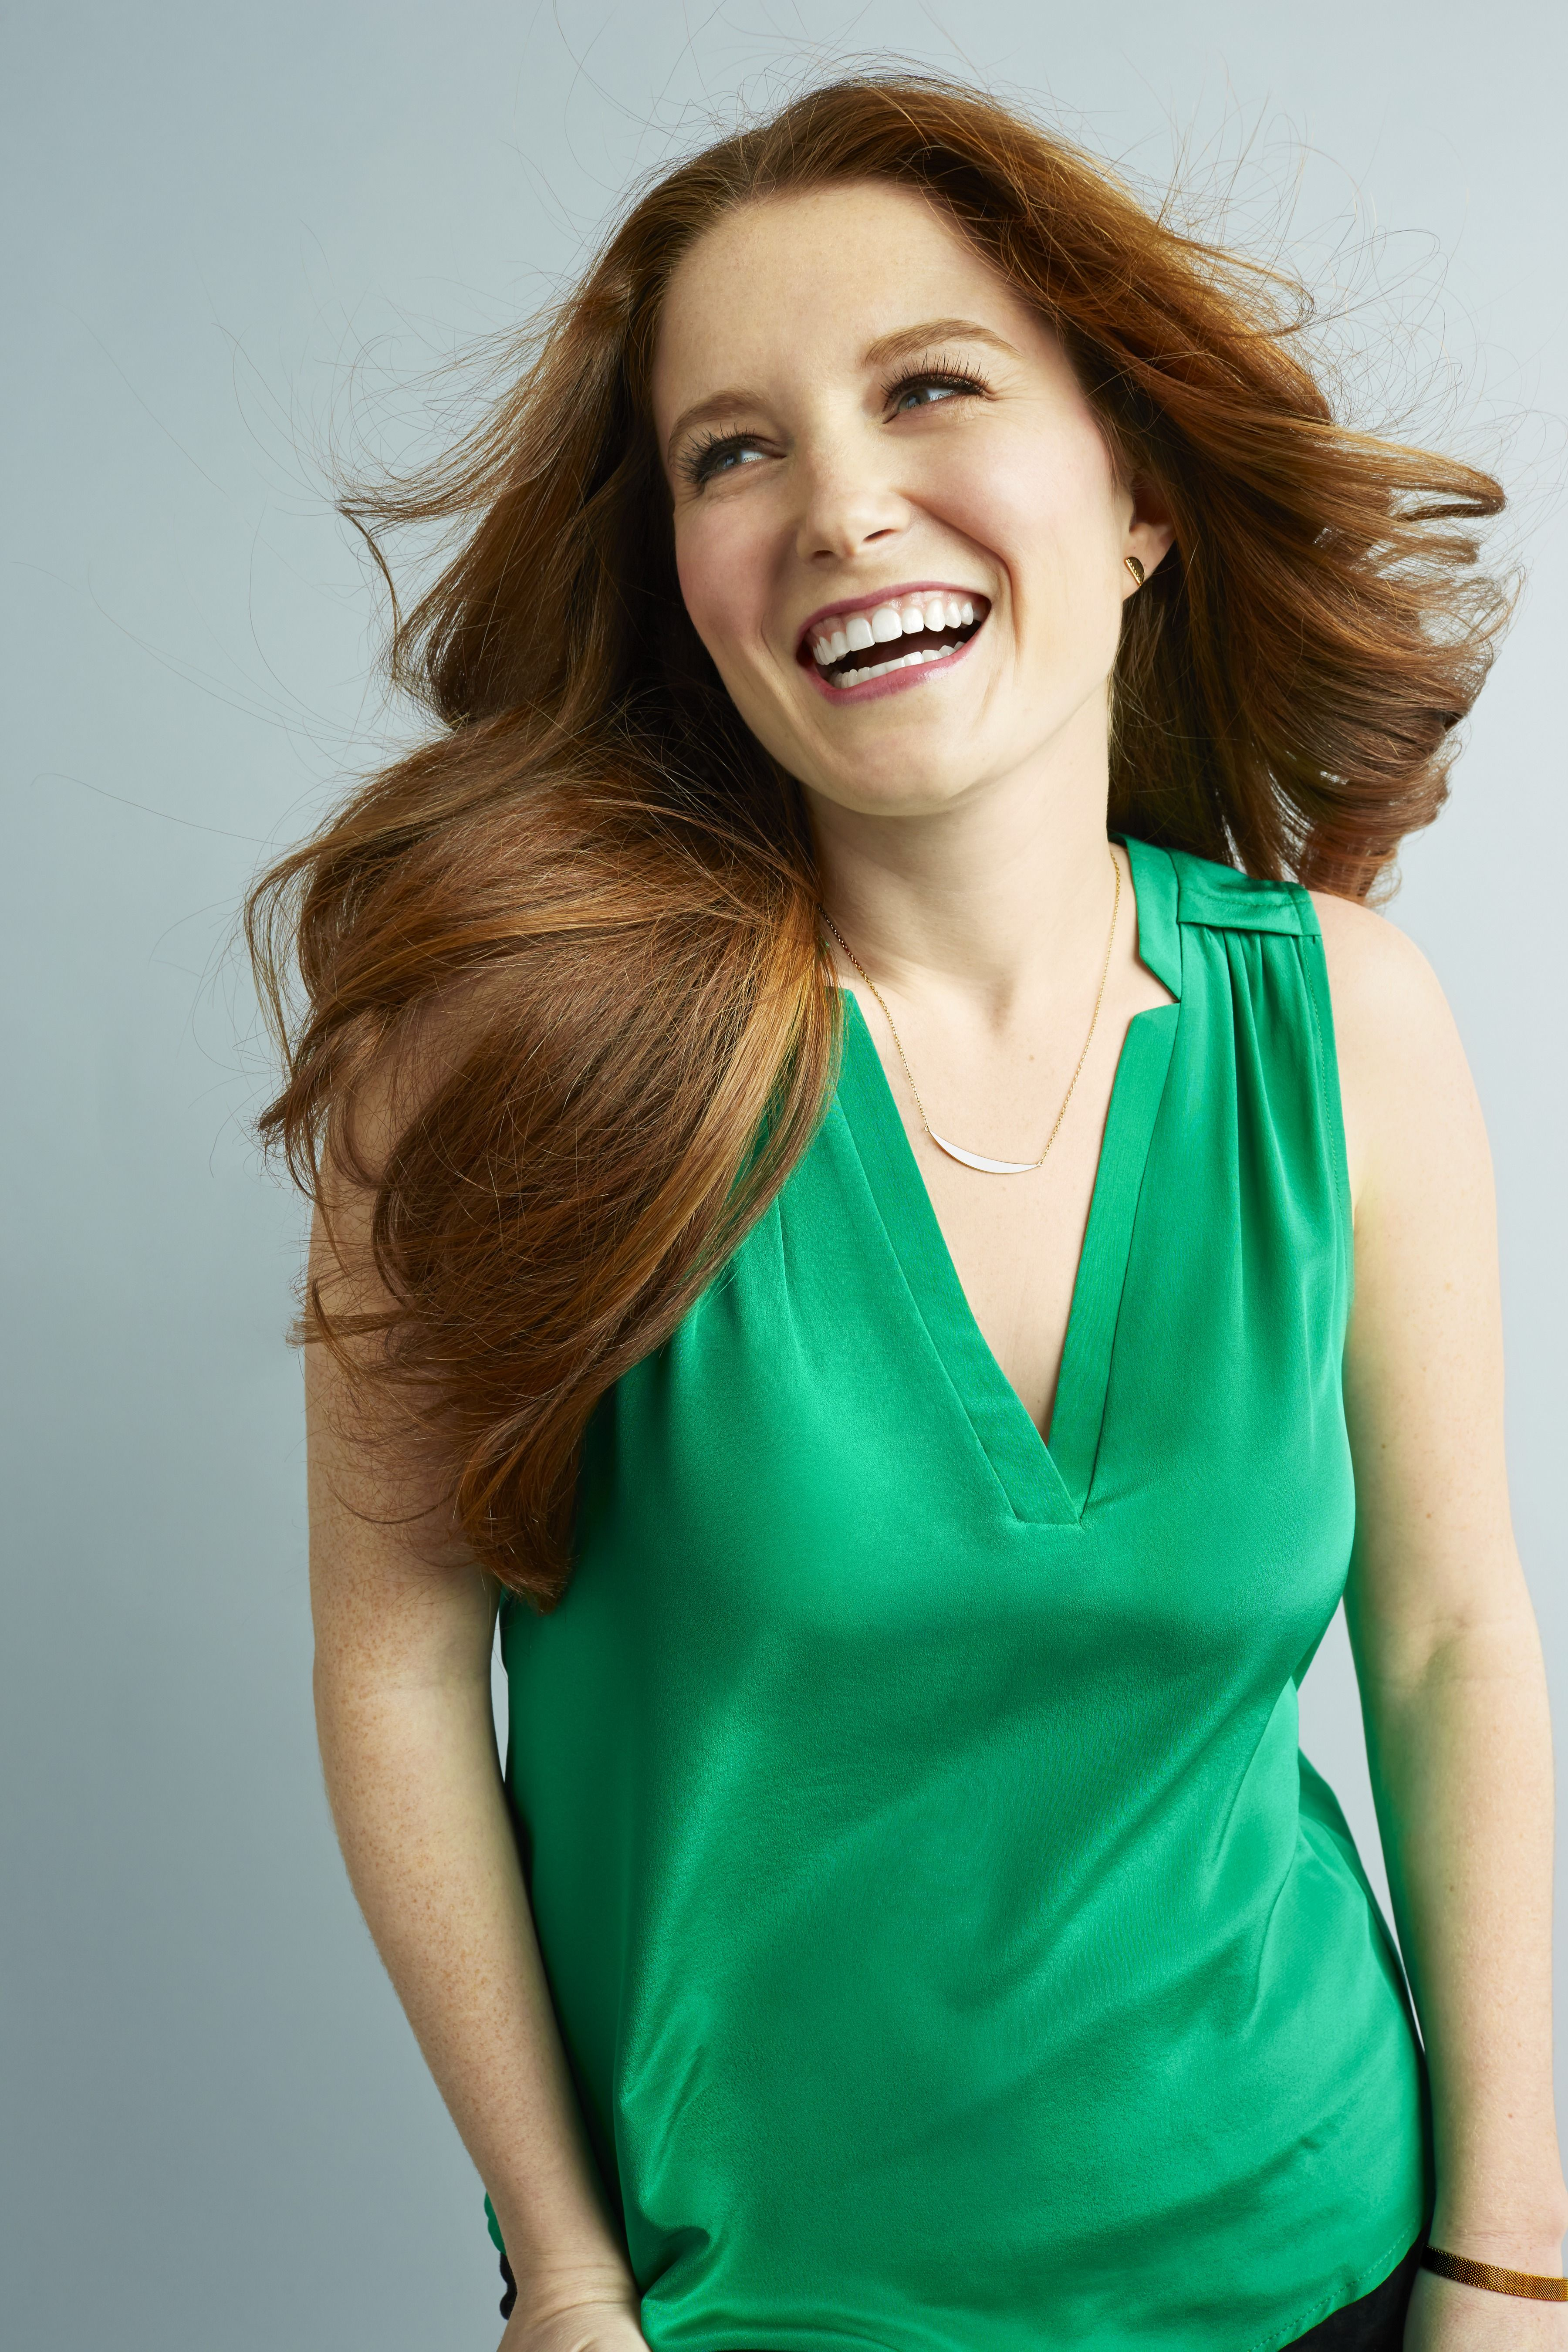 """""""Redheads sparkle in jewel tones,"""" says Trayce Field, costume designer on 2 Broke Girls.<em>This green reminds me of a ring I inherited from my grandmother. I've always loved how it looks against my skin.""""—Anna Clayton, 28</em>Earrings, $40&#x3B; <a href=""""http://www.gorjana.com/jewelry/earrings/luna-shimmer-studs.html"""">gorjana.com</a>. Top, Amanda Uprichard, $172&#x3B; <a href=""""http://www.zappos.com/"""">zappos.com</a>. Necklace, $35&#x3B; <a href=""""http://earthychic.net/collections/redbook-moon-march-2015/products/crescent-half-moon-necklace"""">vearthychic.net</a> (20% off with code REDBOOK20)."""